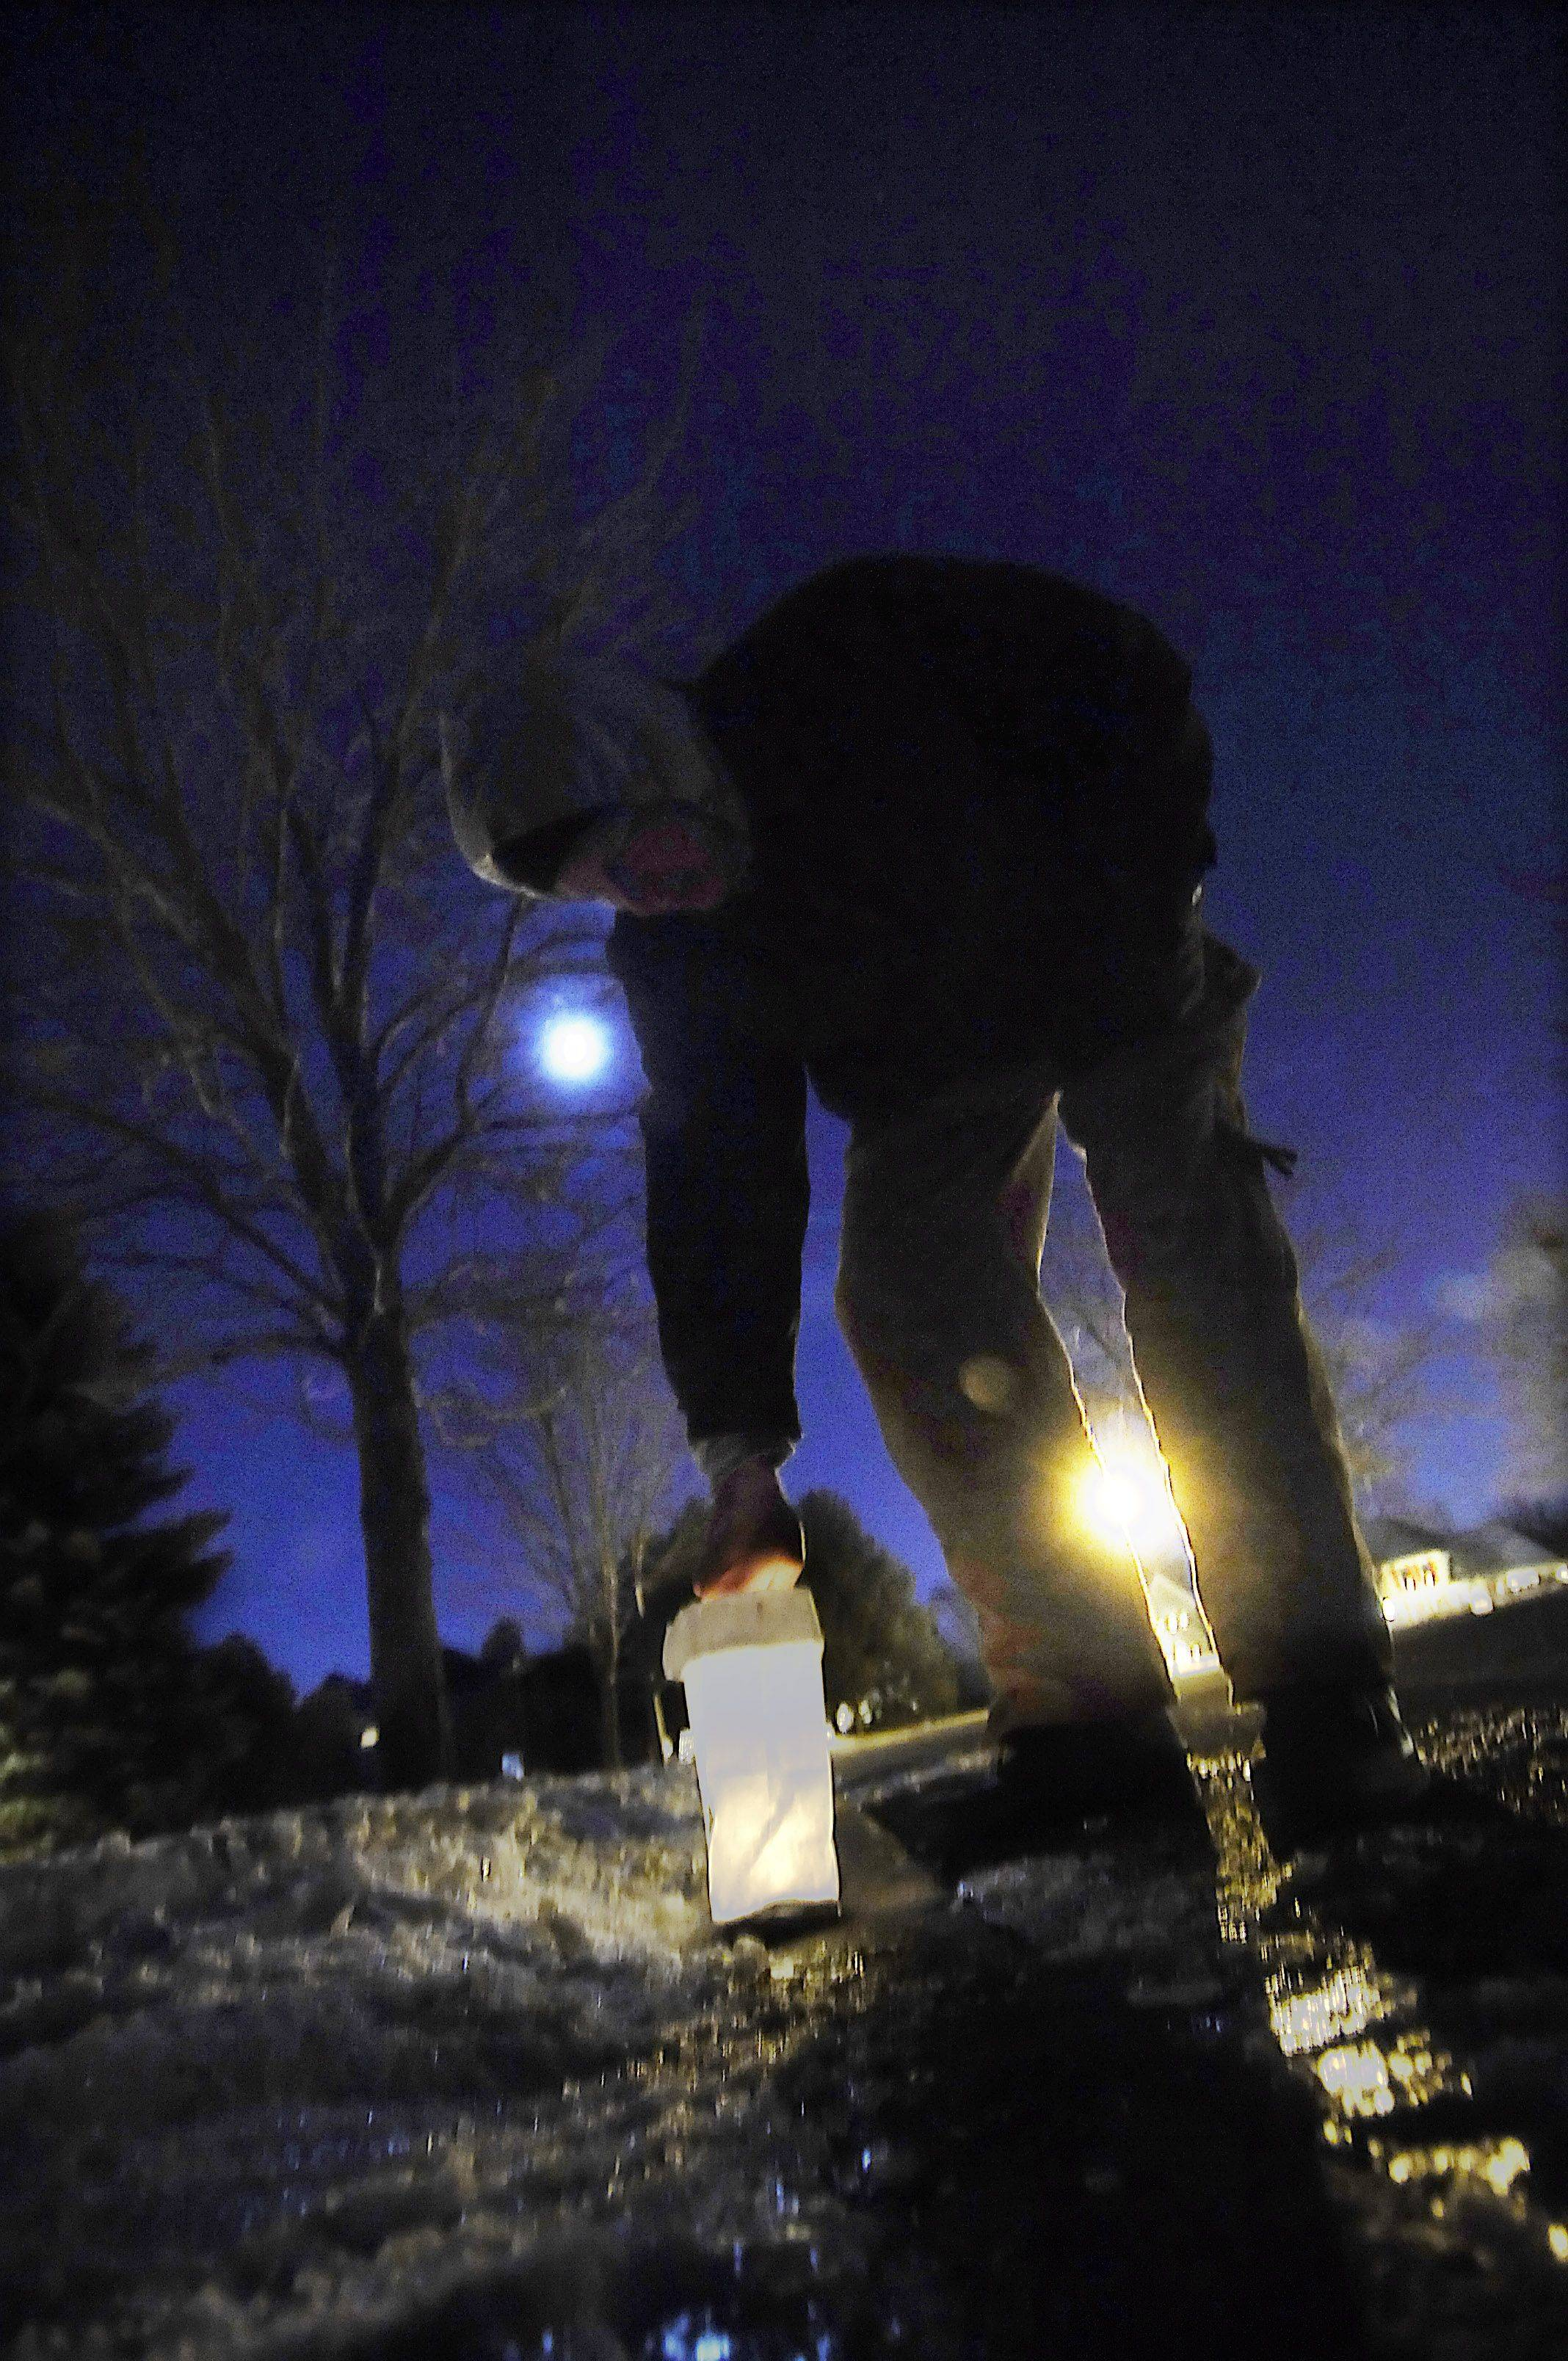 Randy Kohler lights luminarias in his yard Sunday night in the Patriot Meadows subdivision in Cary. He said he has been a part of the neighborhood glow since he moved there 18 years ago. Spruce Tree Drive is decorated with more than 1,200 luminarias.